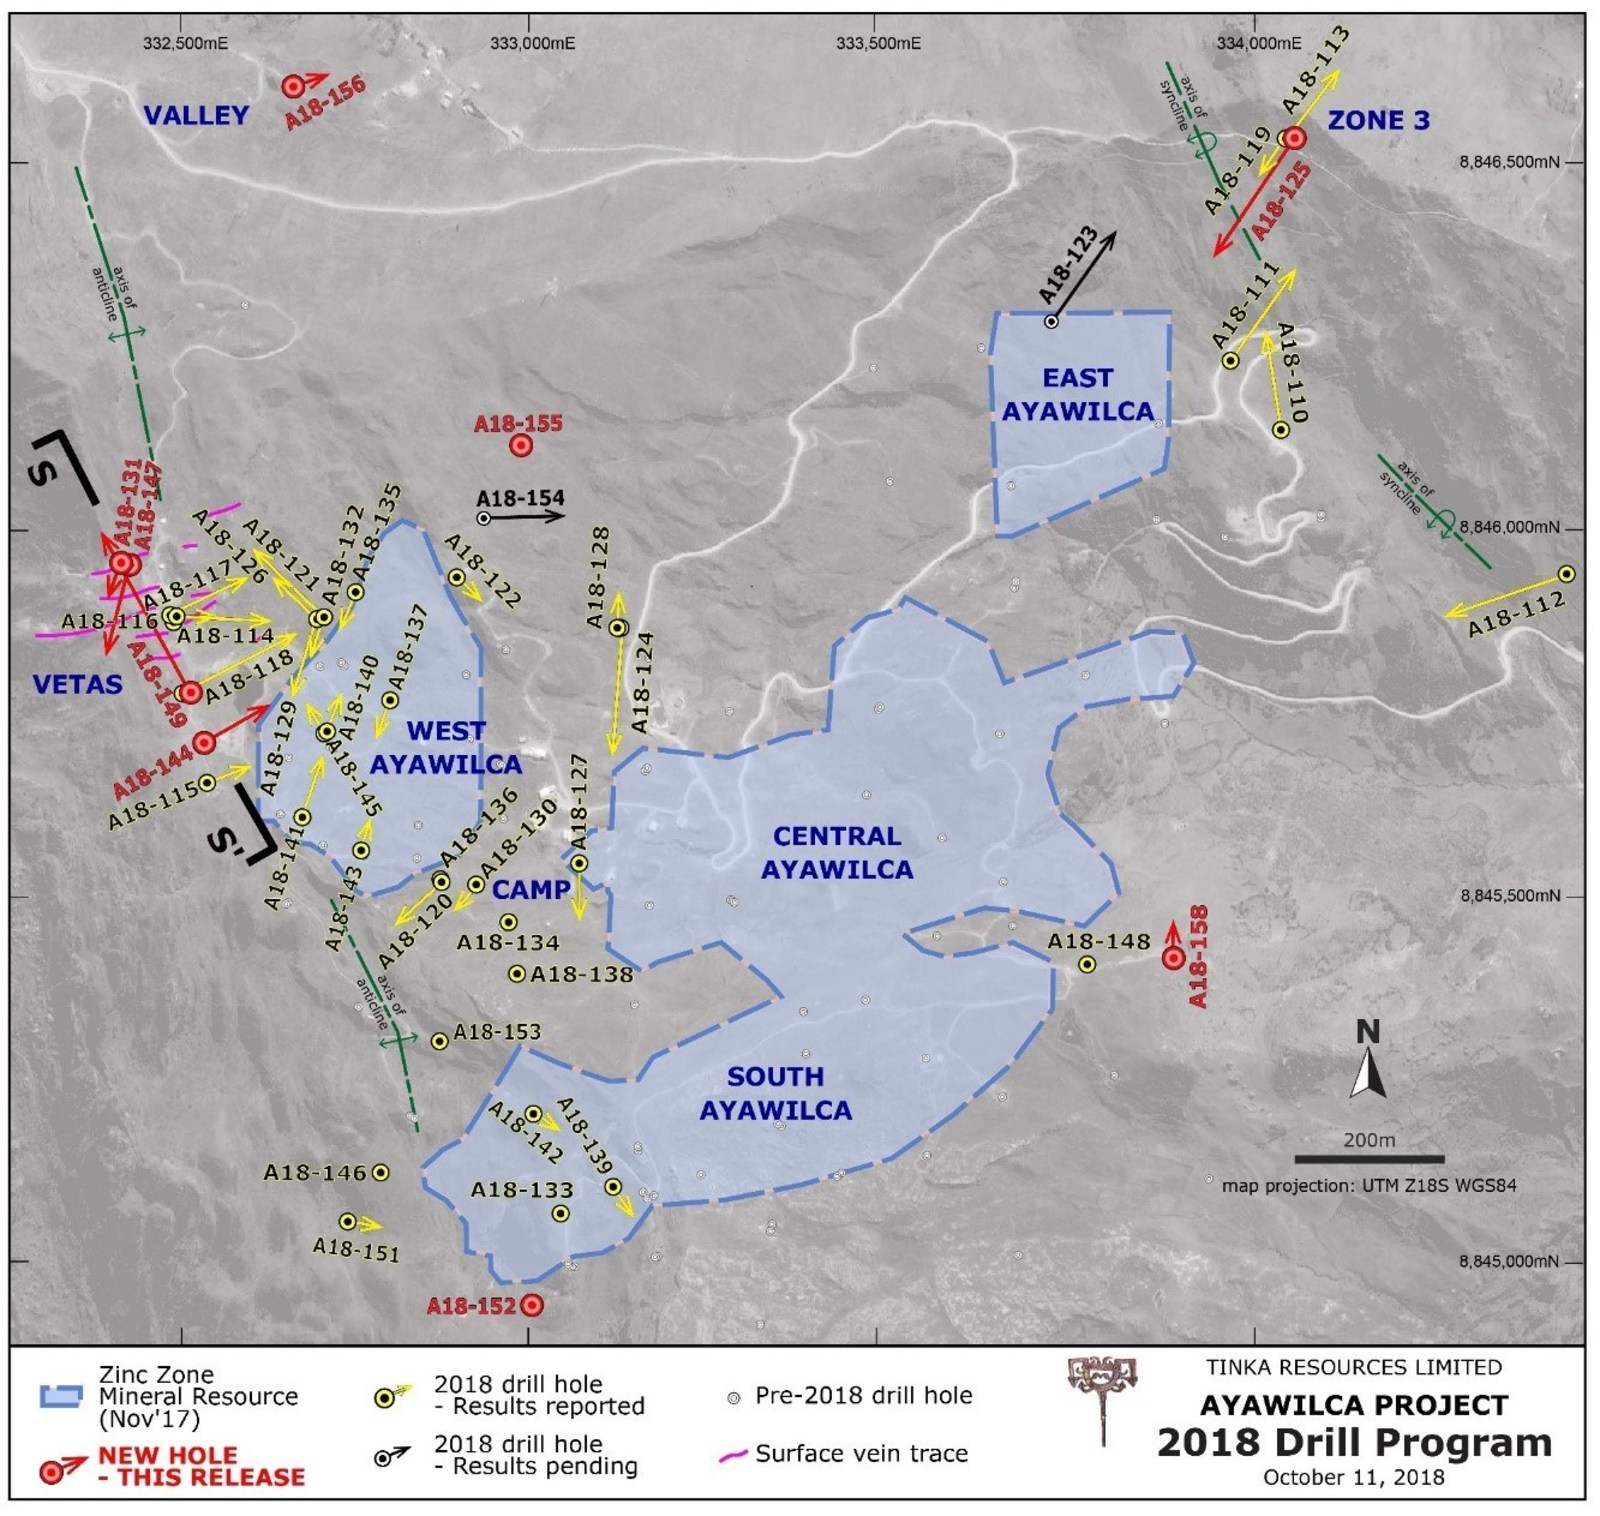 Figure 2.  Ayawilca drill hole map highlighting 2018 holes & existing zinc resources